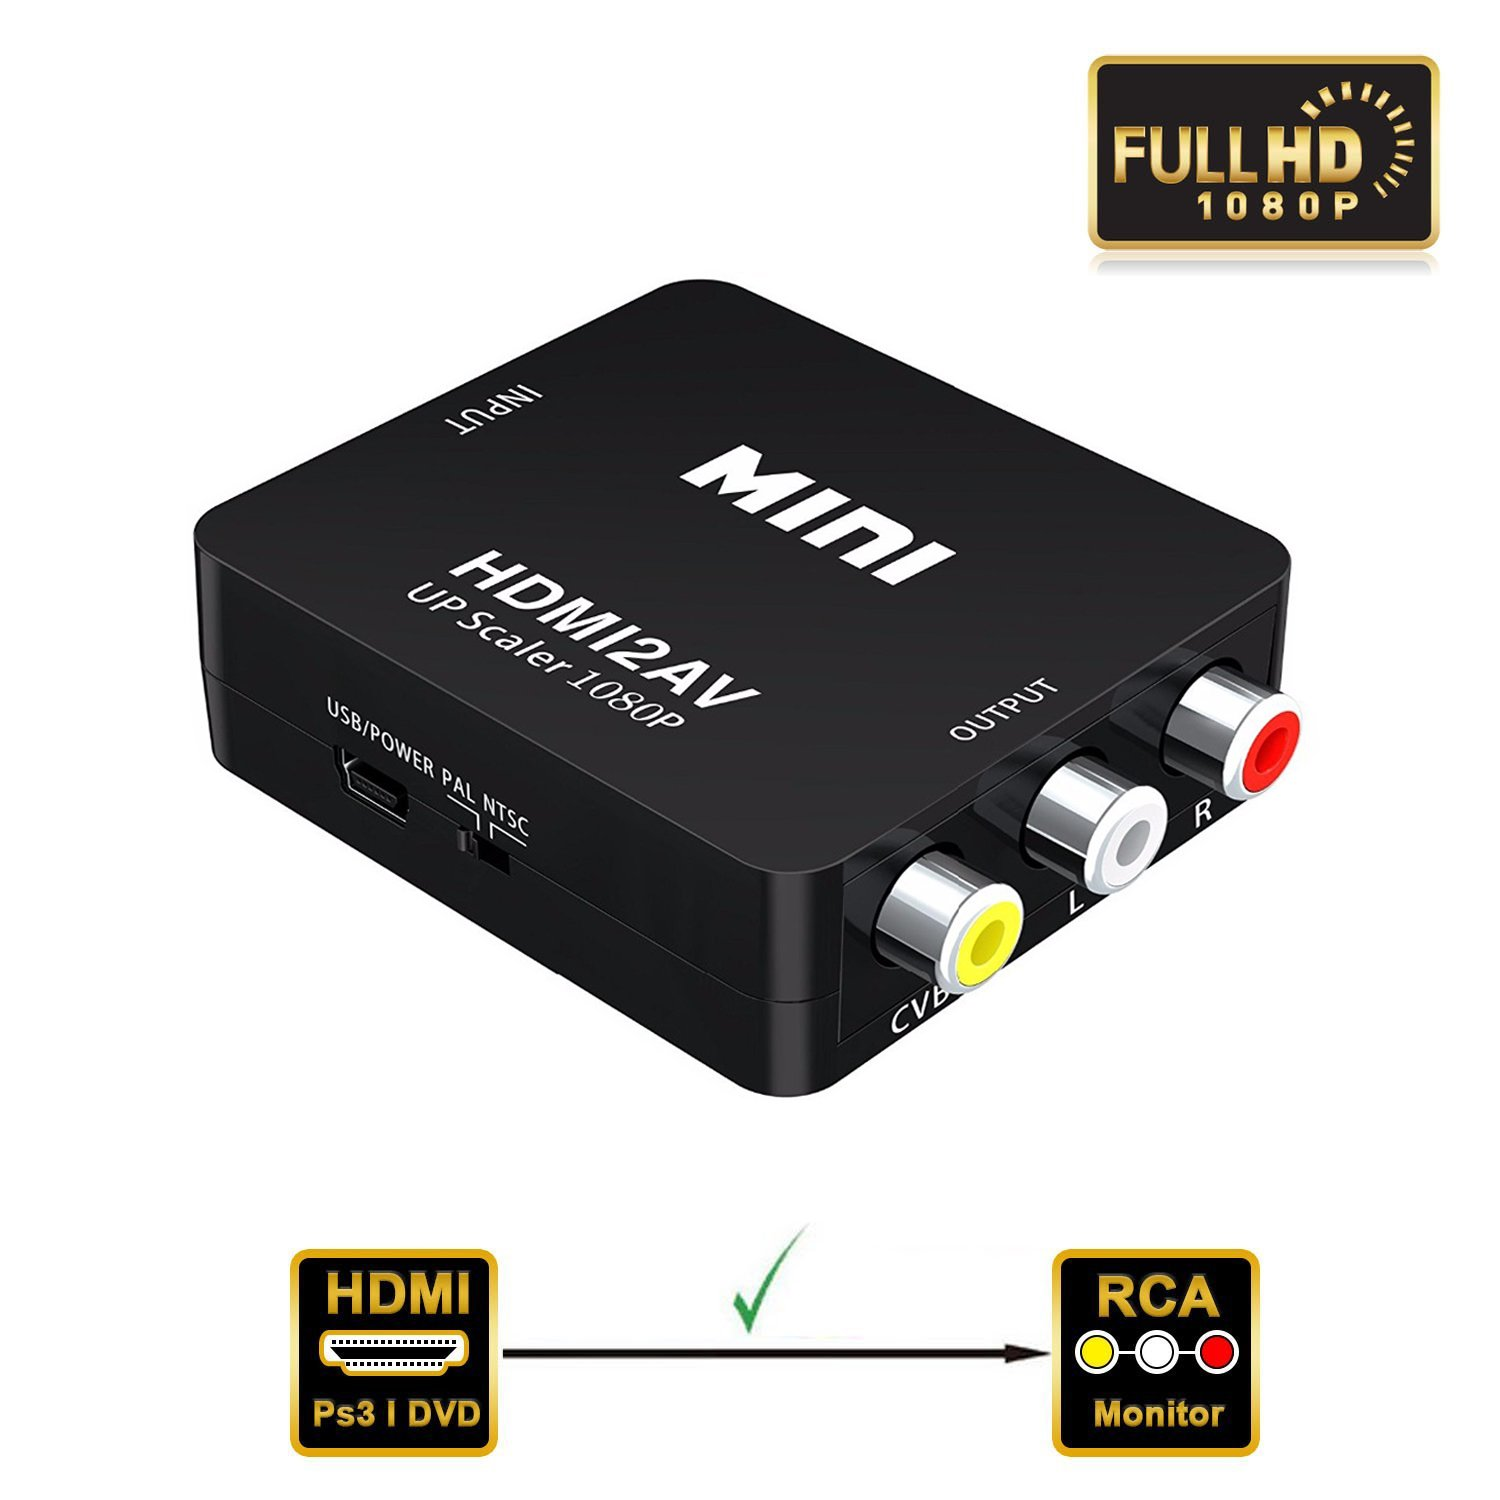 VAlinks 1080P HDMI to AV HDMI to 3RCA Composite CVBS Video Audio Converter Adapter HDMI 2 RCA Support PAL/NTSC for PC Laptop Xbox Blue-Ray PS4 PS3 HD TV STB VHS VCR Comb Camera DVD Color Box -Black